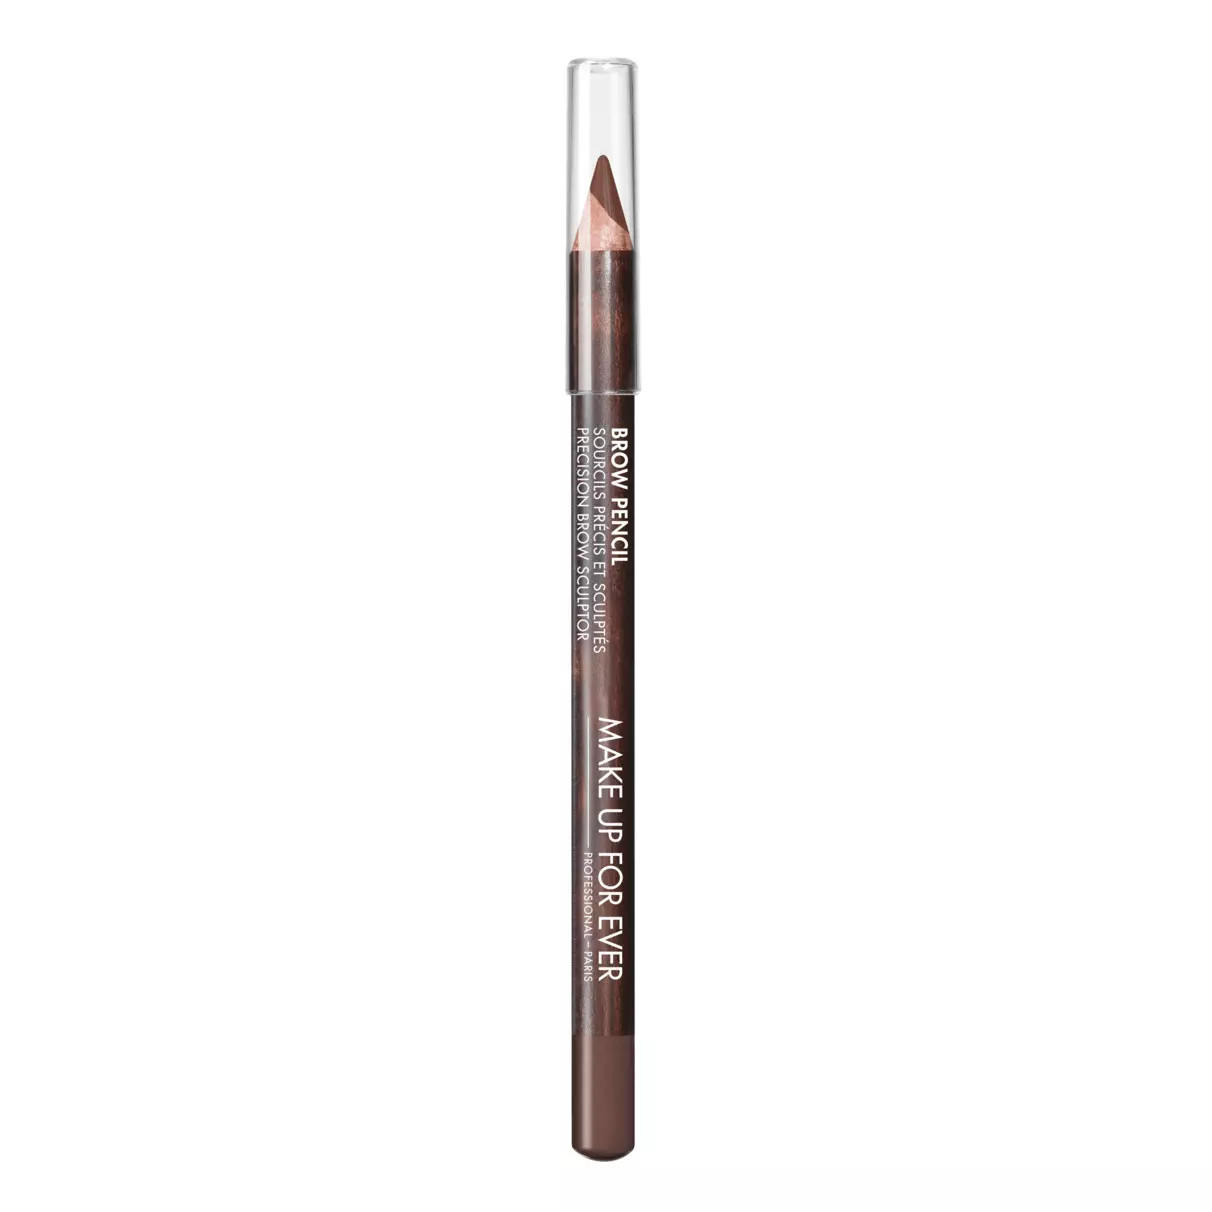 Makeup Forever Brow Pencil No. 10